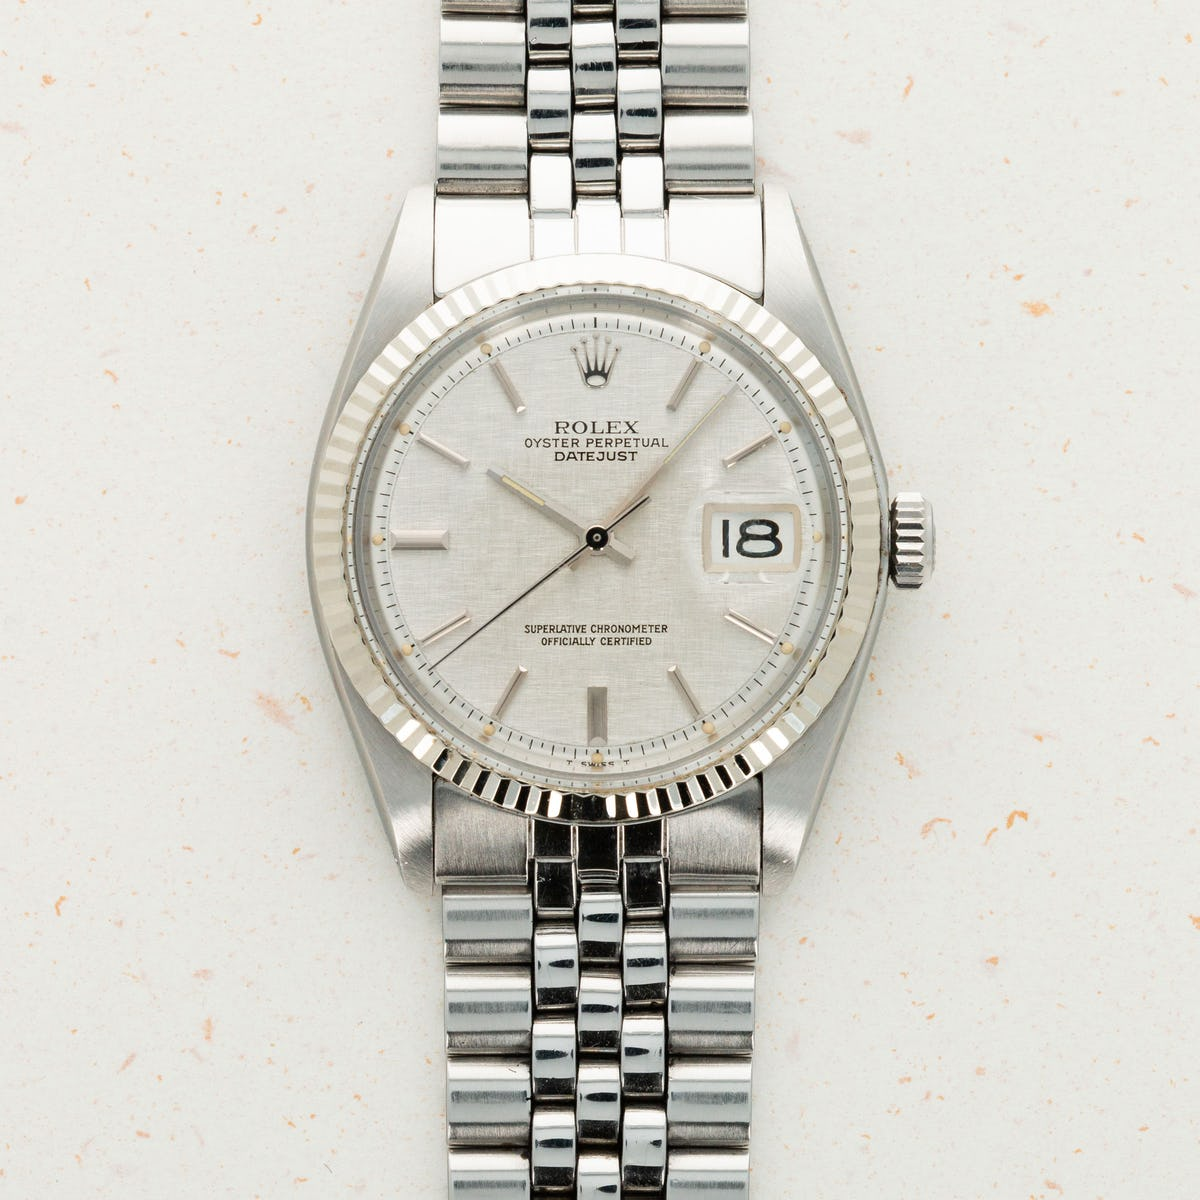 Thumbnail for Rolex Stainless Steel Datejust Linen Dial 1601